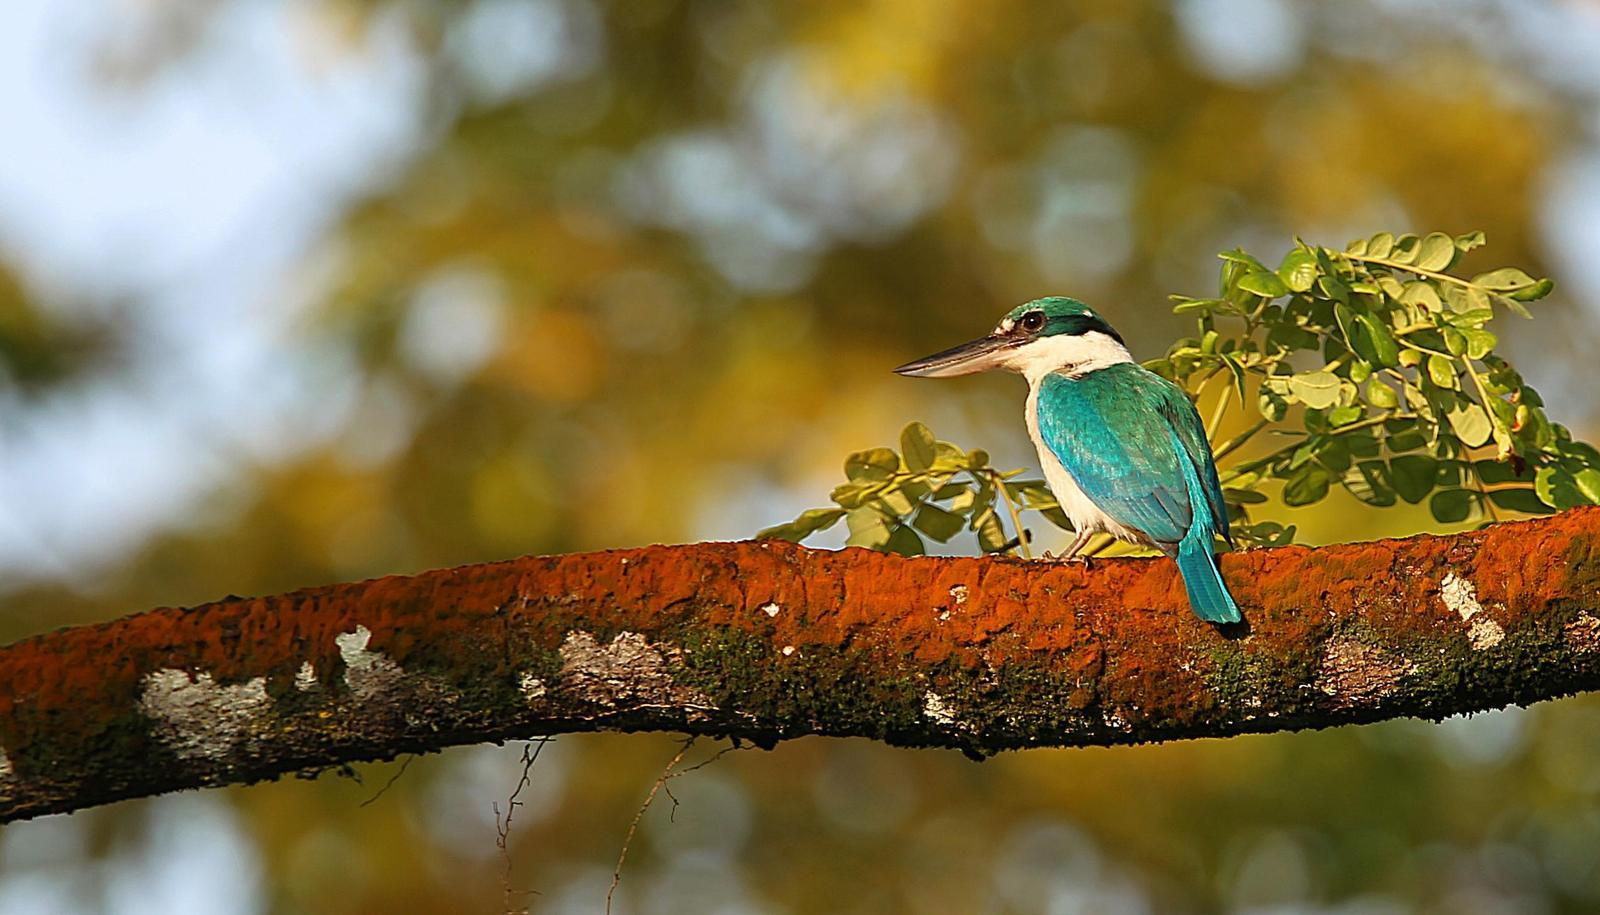 Collared Kingfisher Photo by Kenneth Cheong